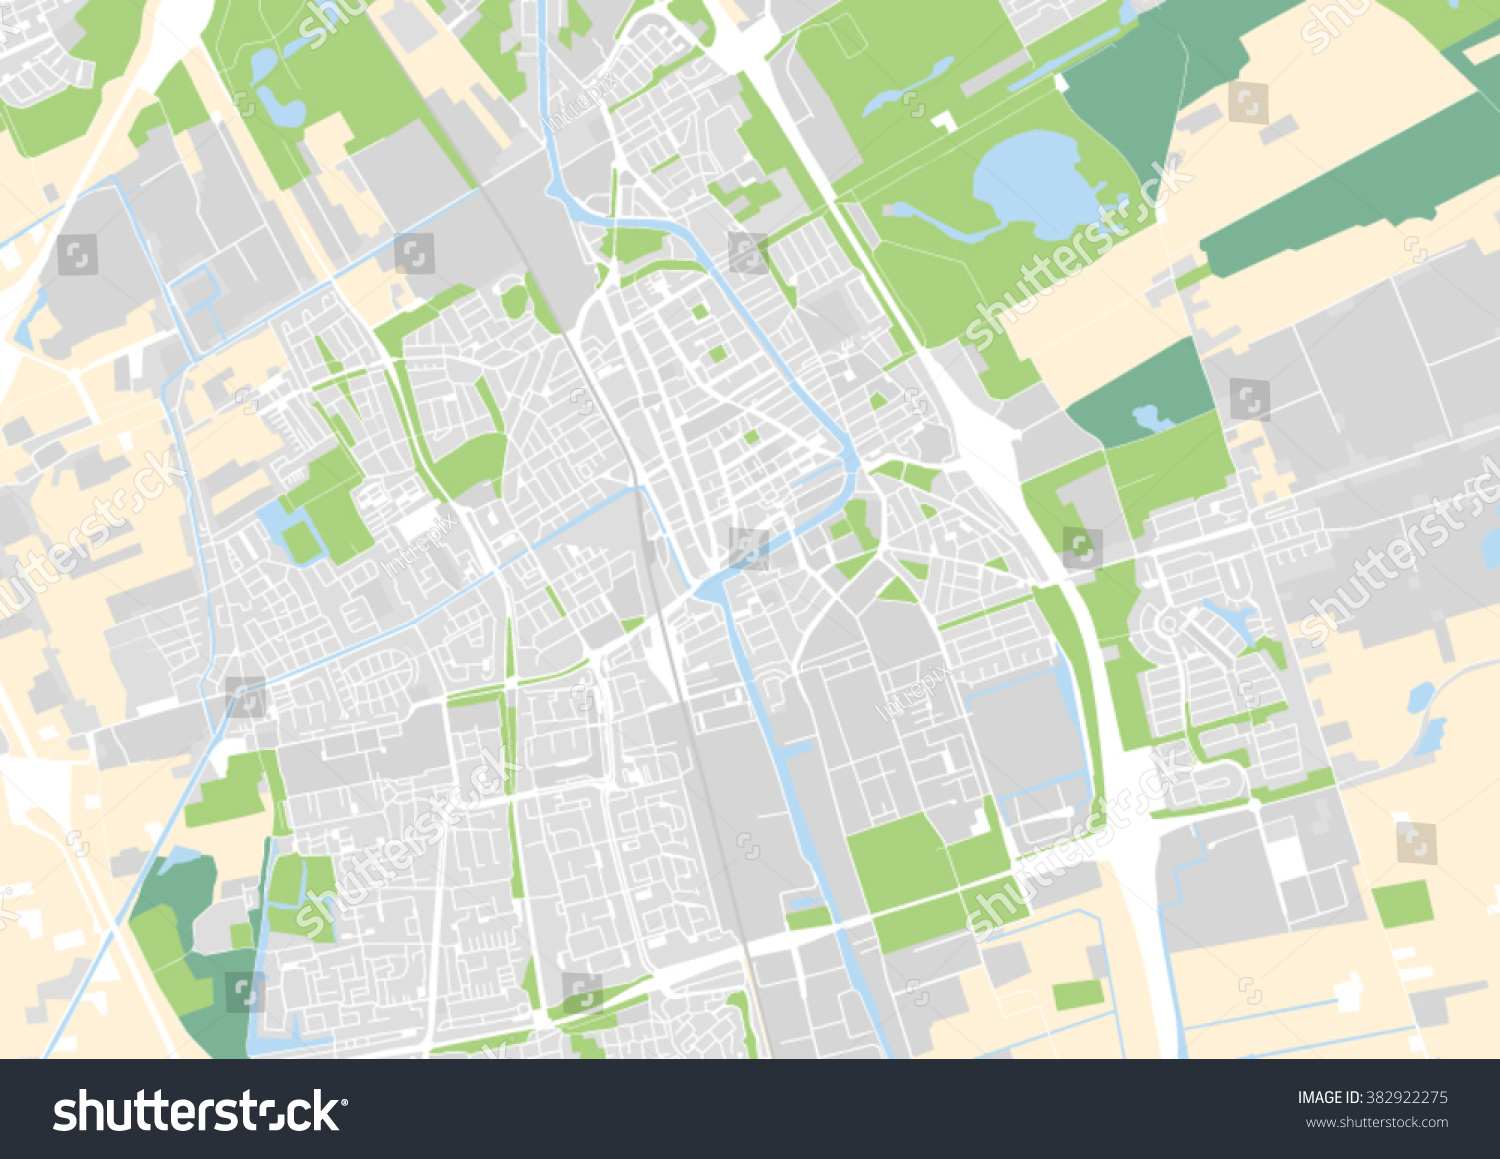 Vector City Map Delft Netherlands Stock Vector HD Royalty Free